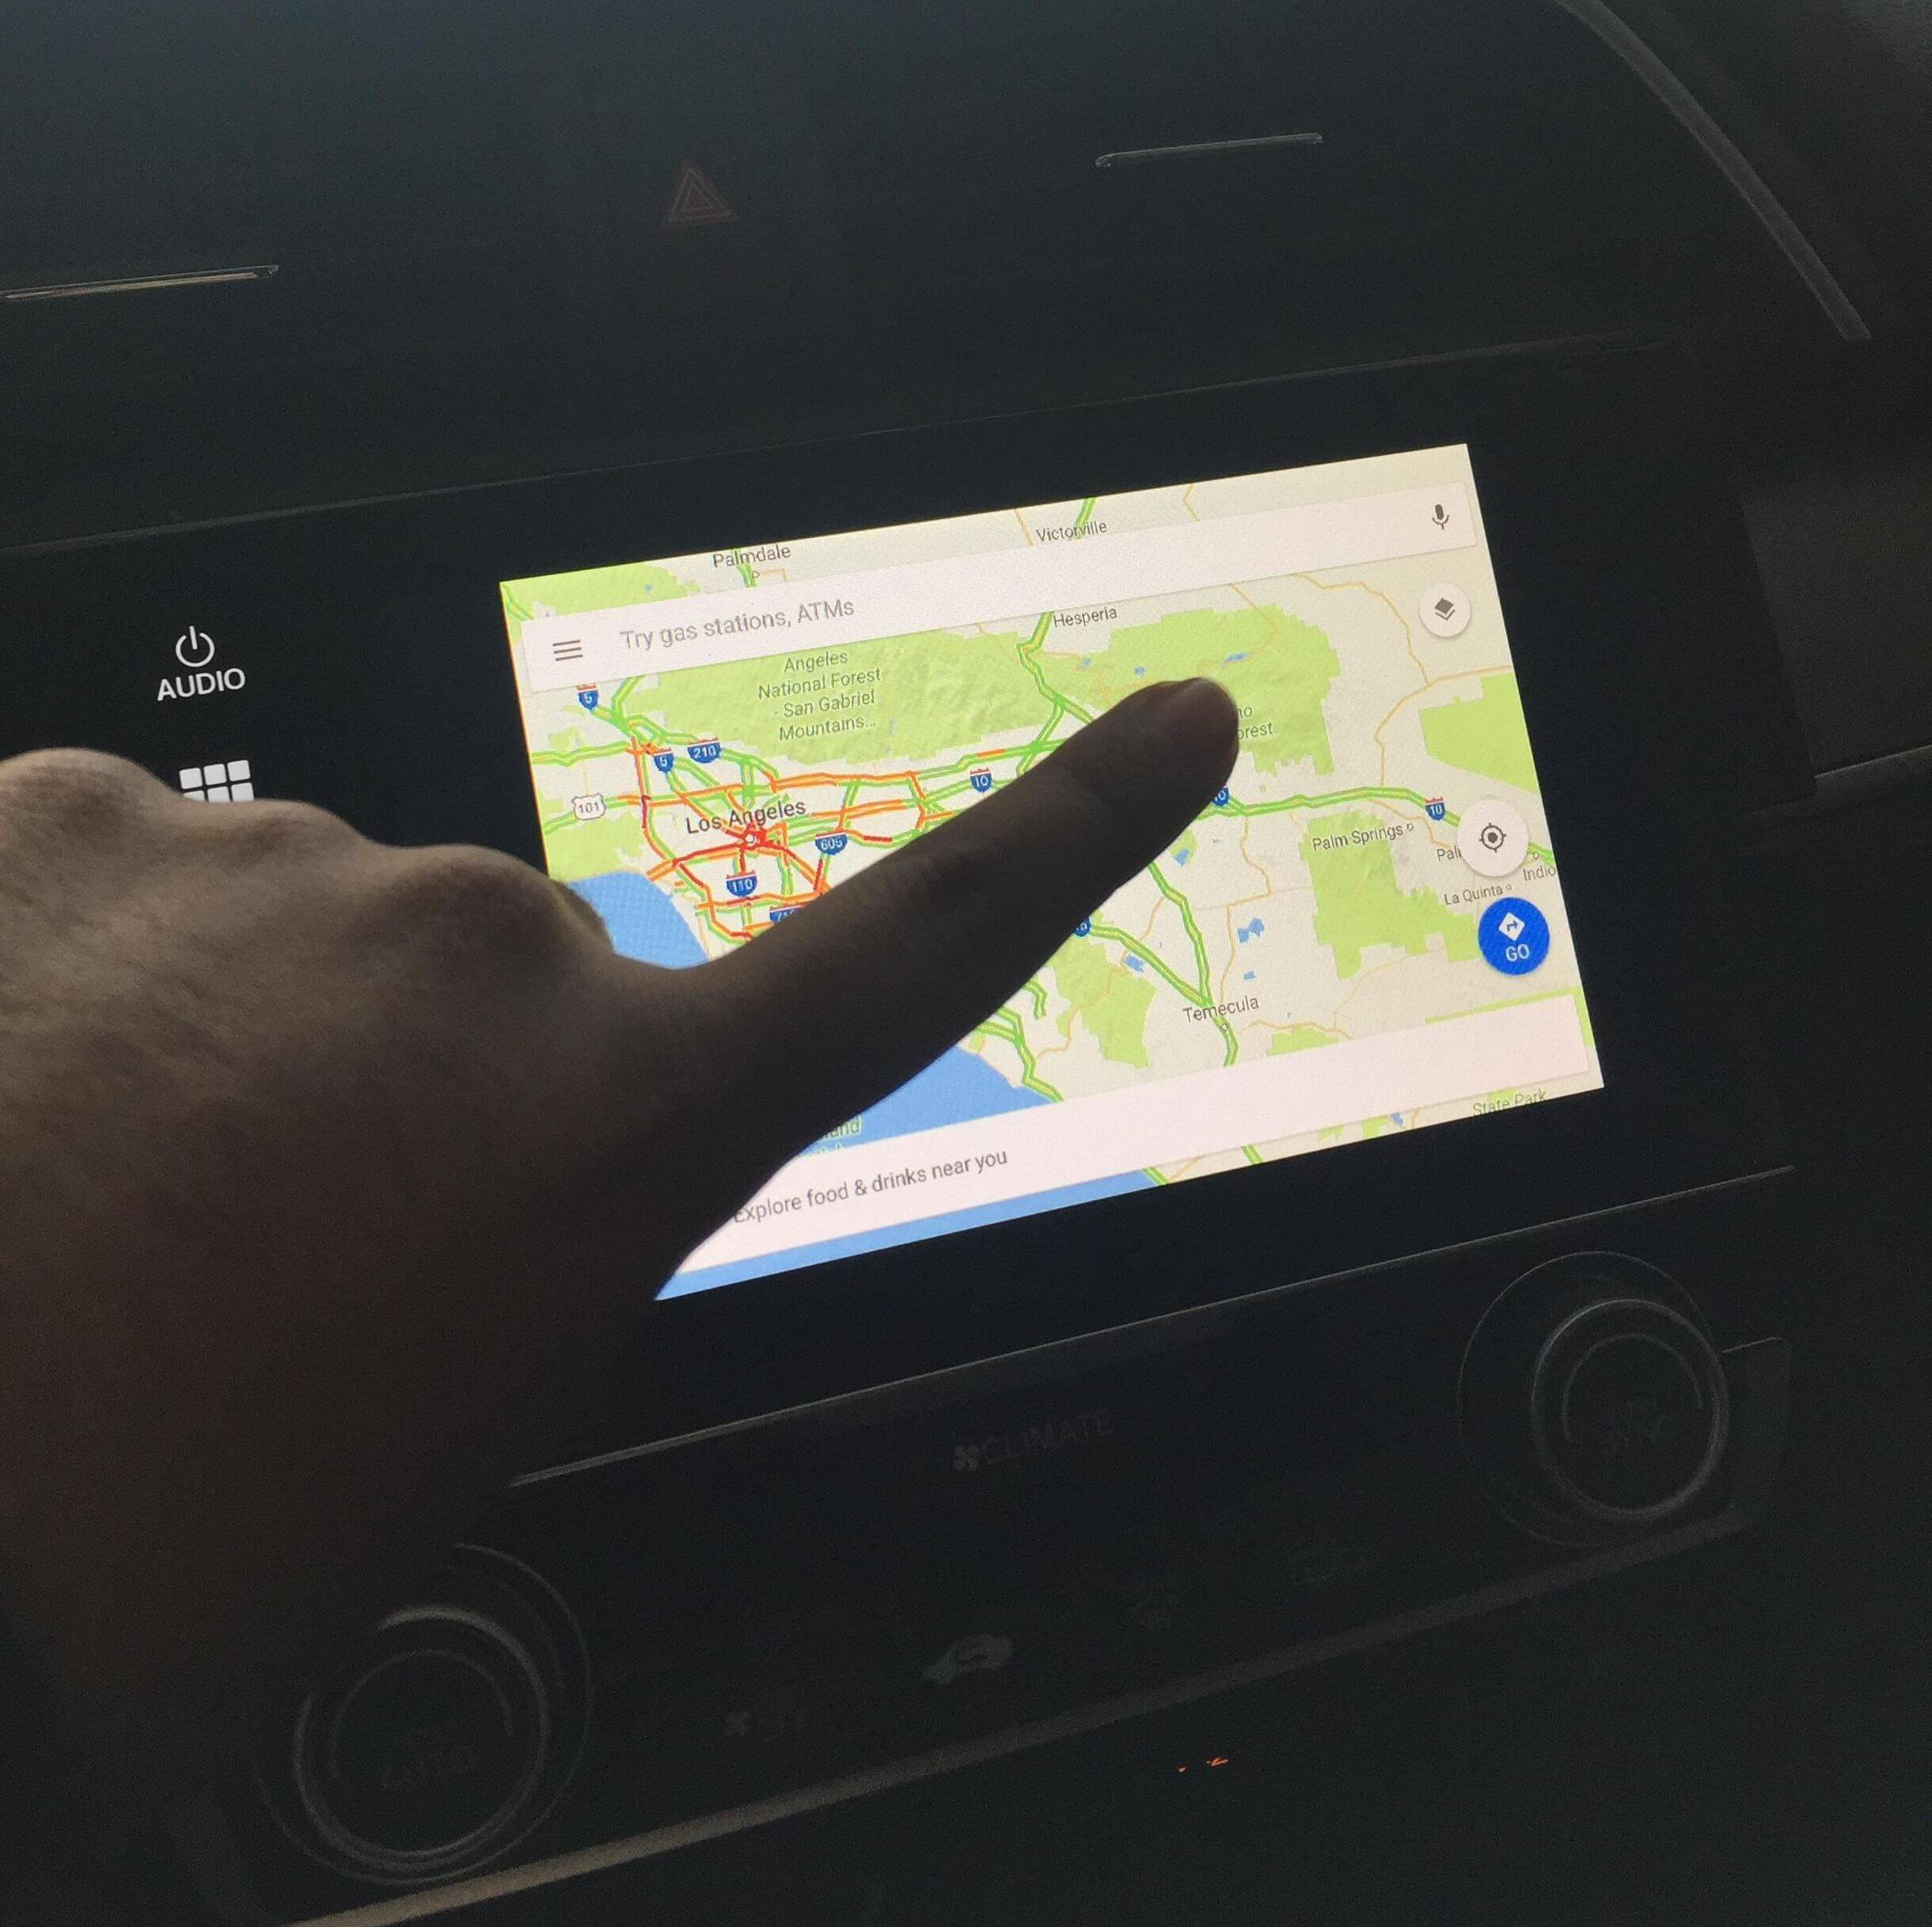 讓Apple CarPlay系統完全解禁!可執行Google Maps與第三方APP